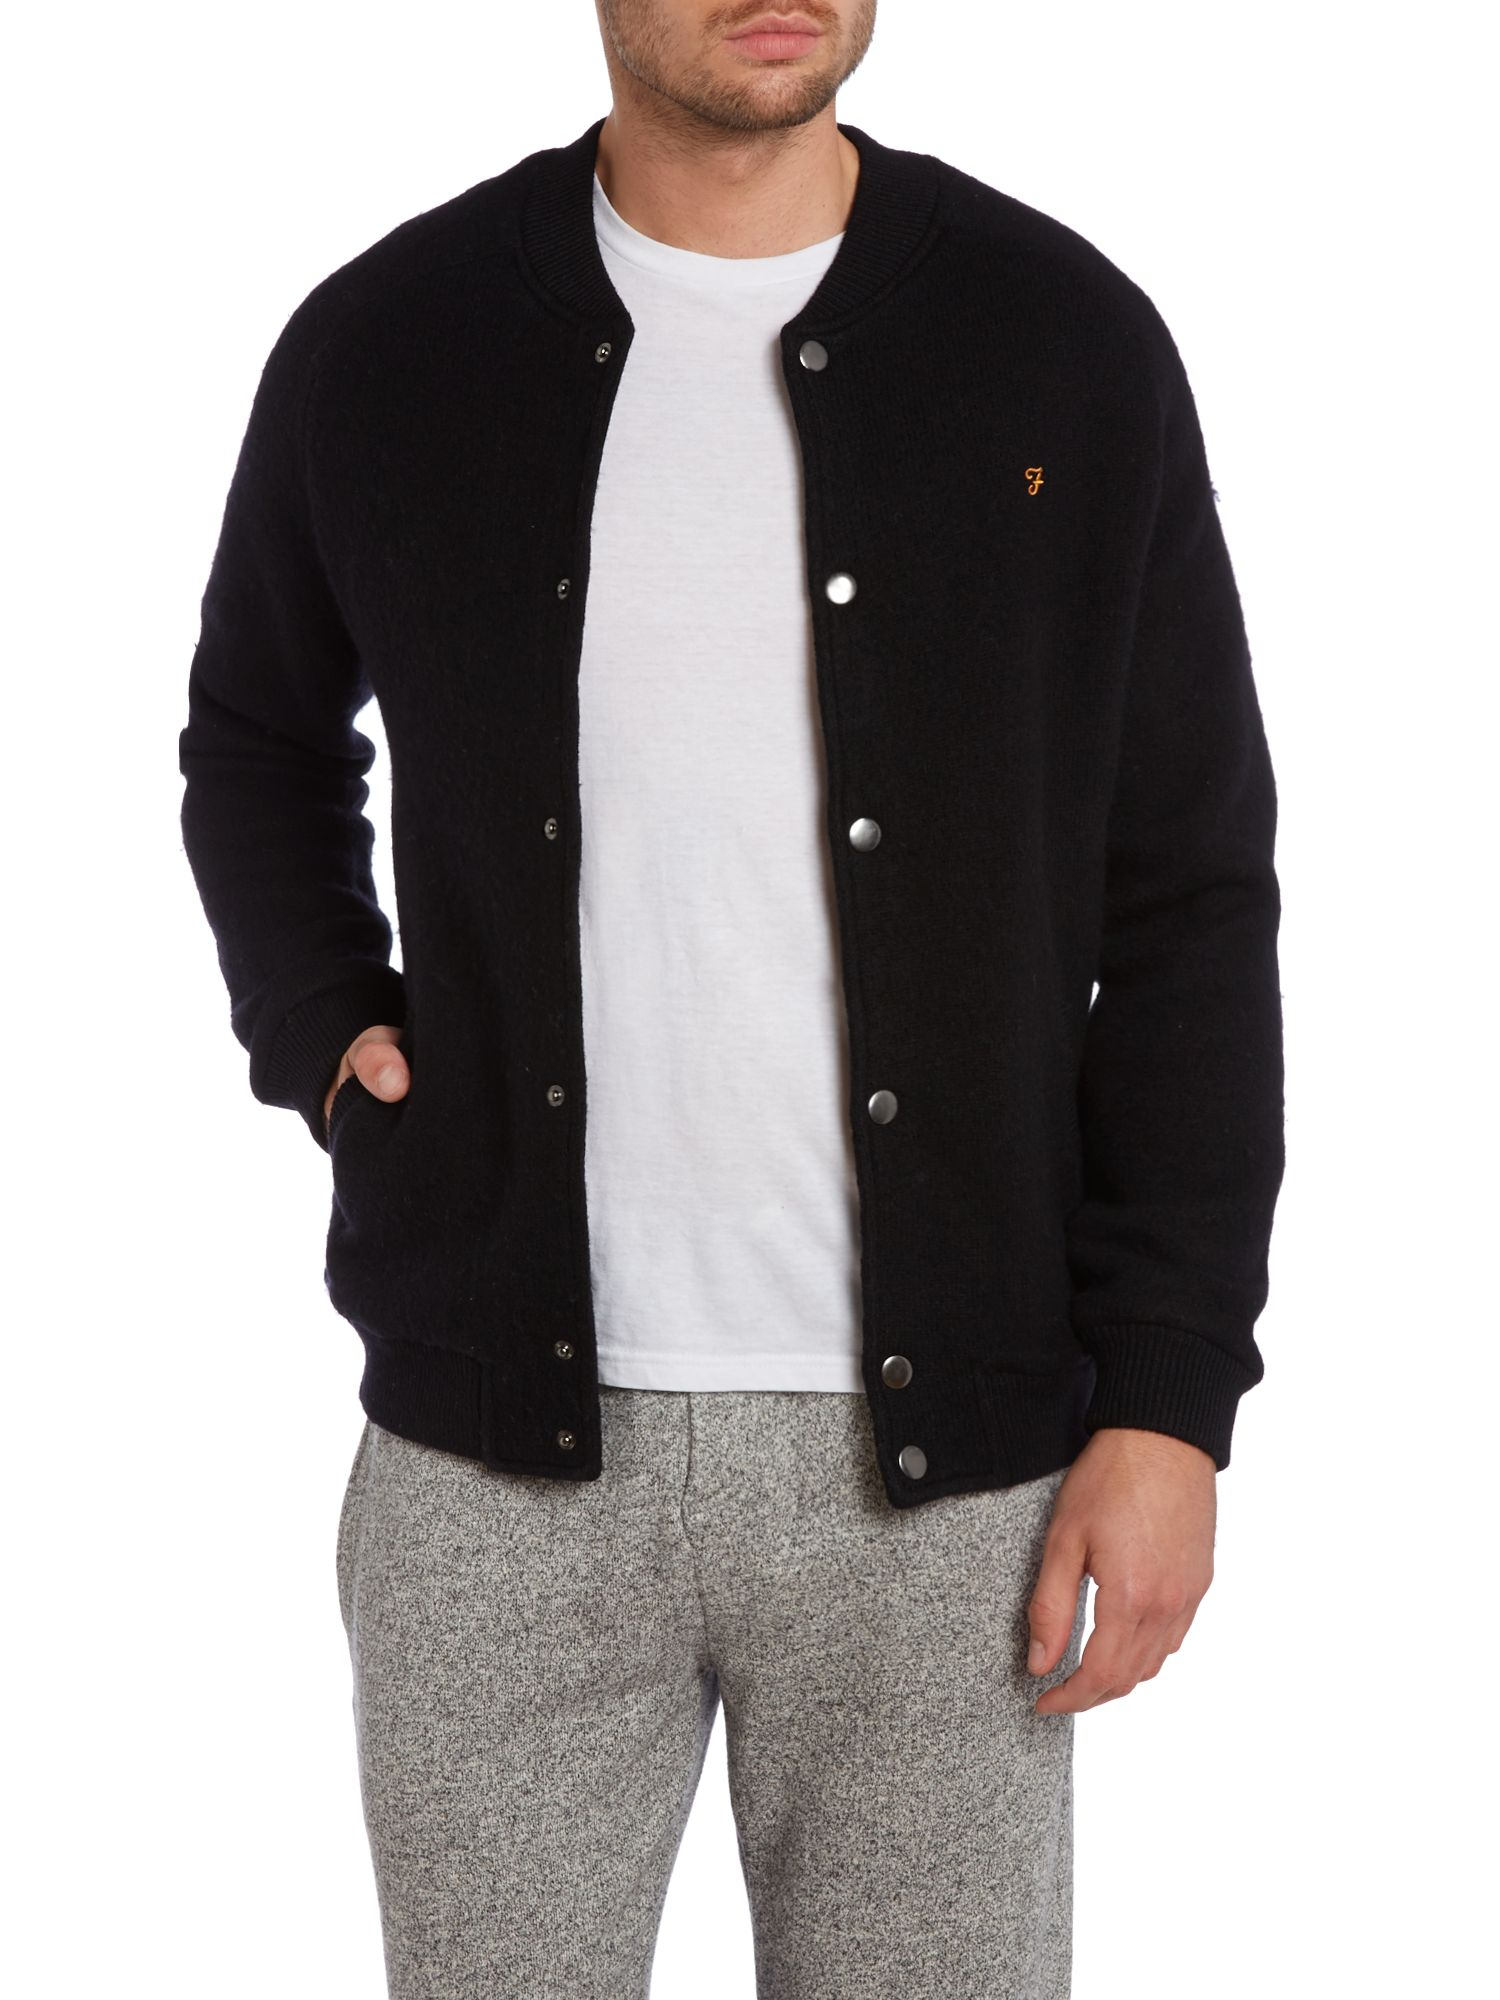 Farah Wool Bomber Jacket in Black for Men | Lyst